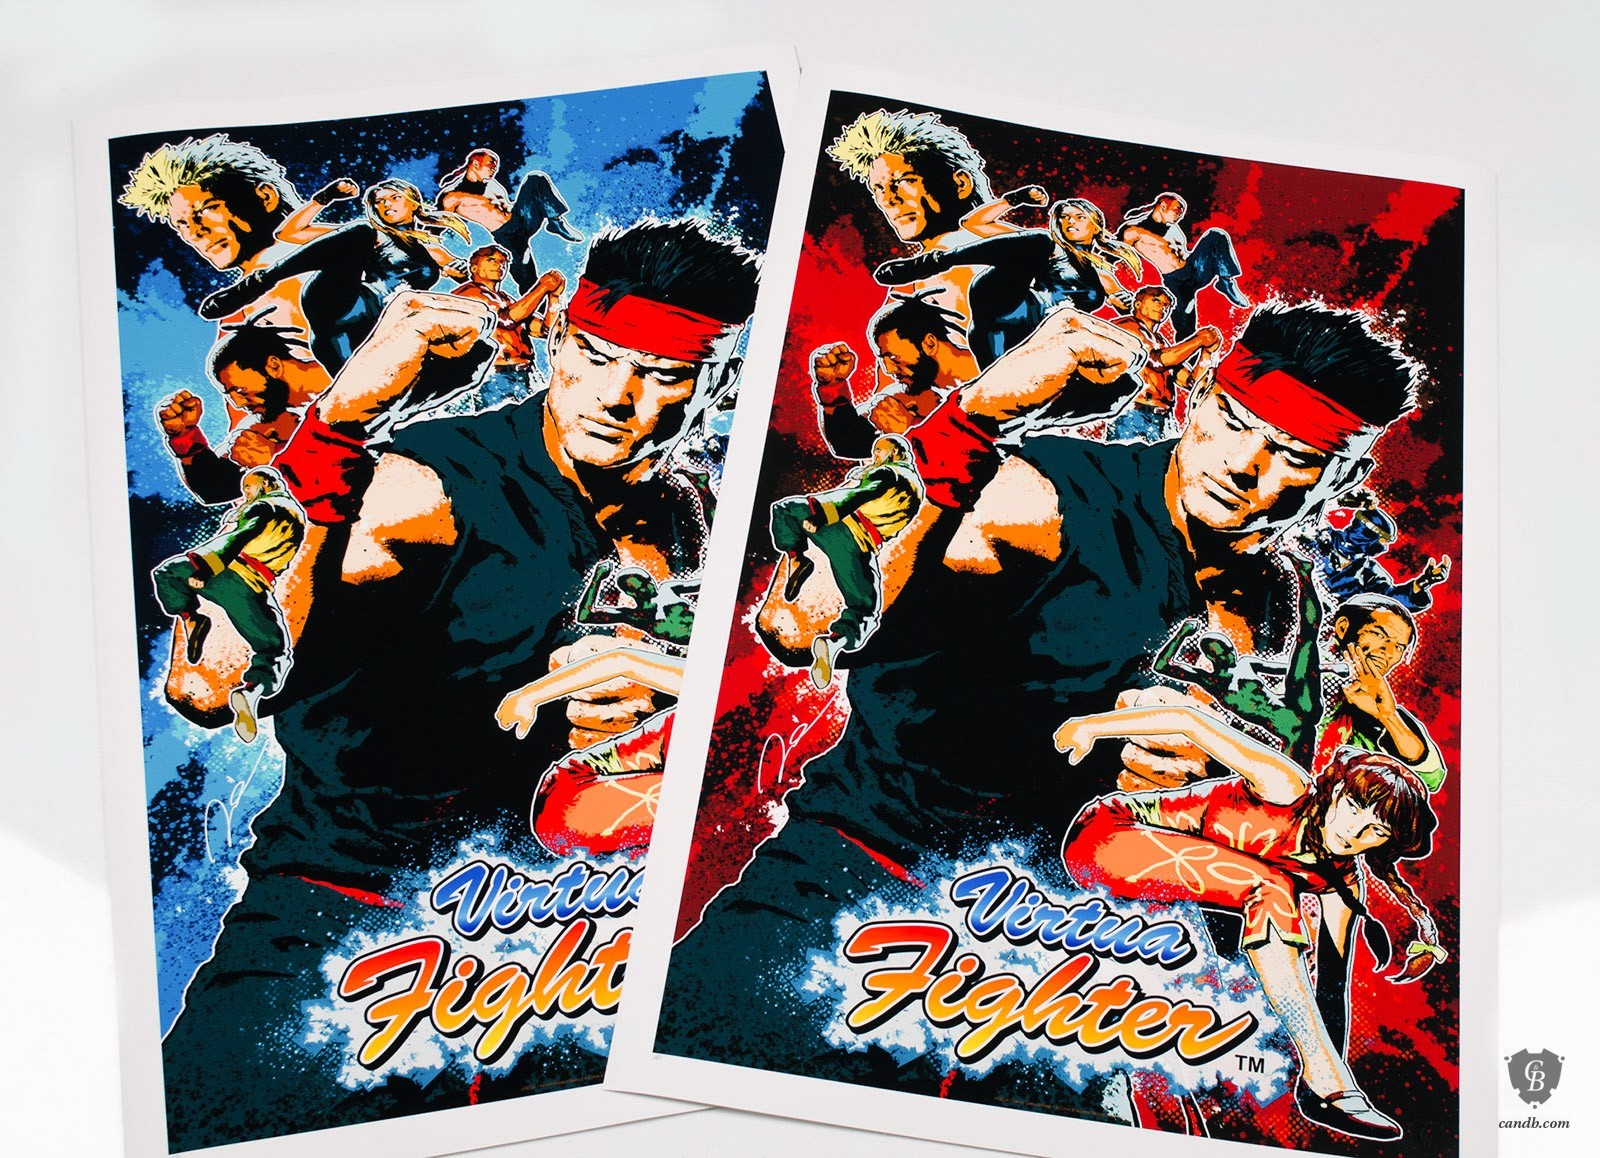 Cook & Becker - Sega Virtua Fighter Art